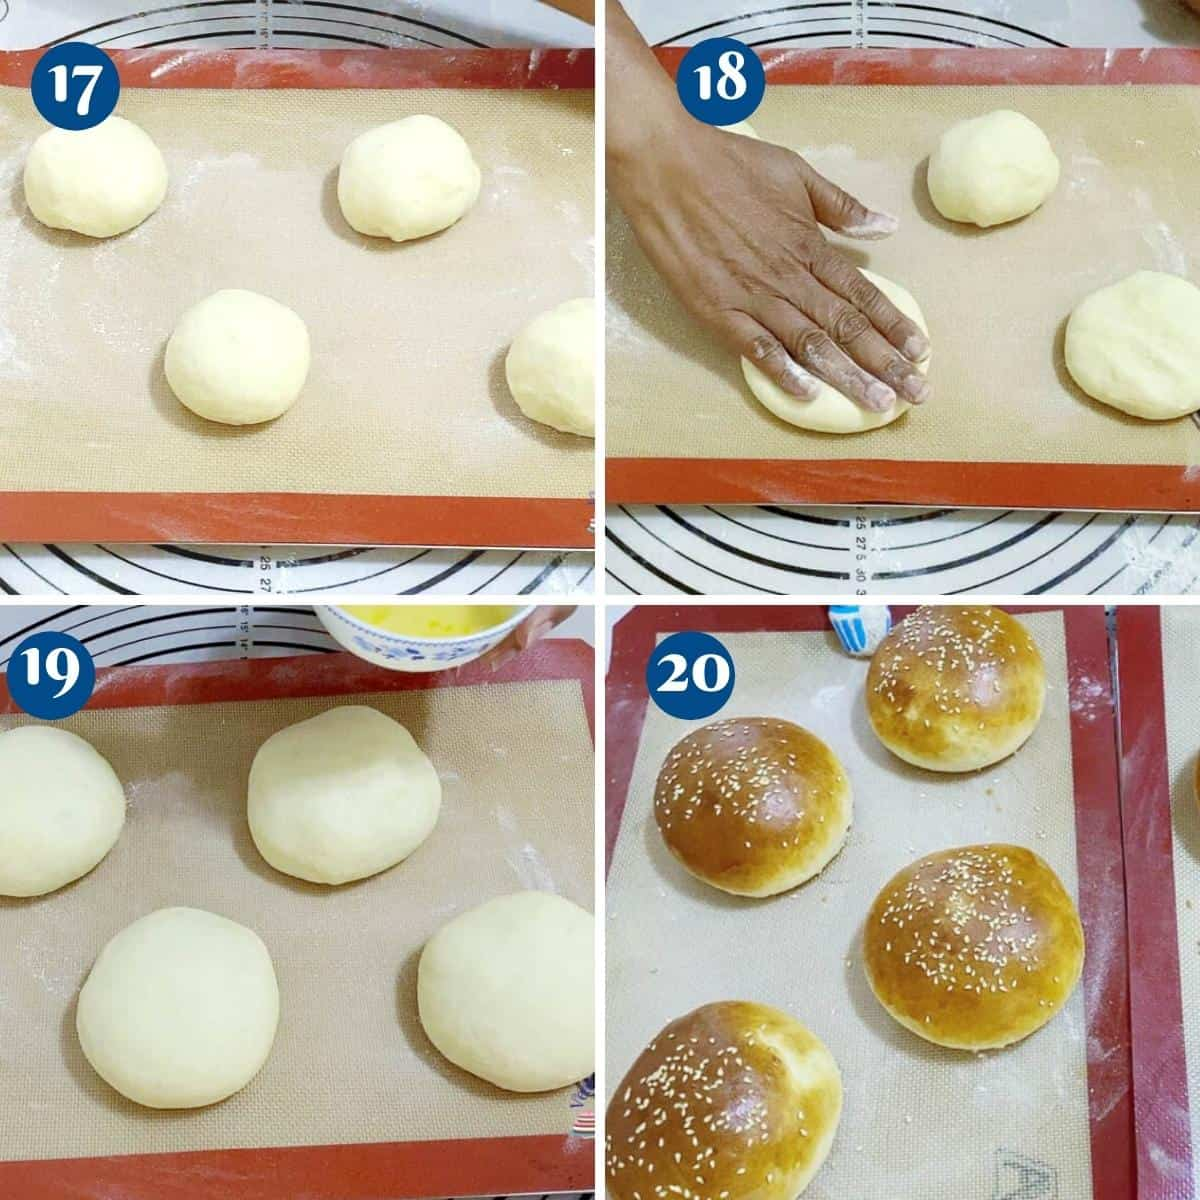 Progress pictures collage shaping the hamburger buns.